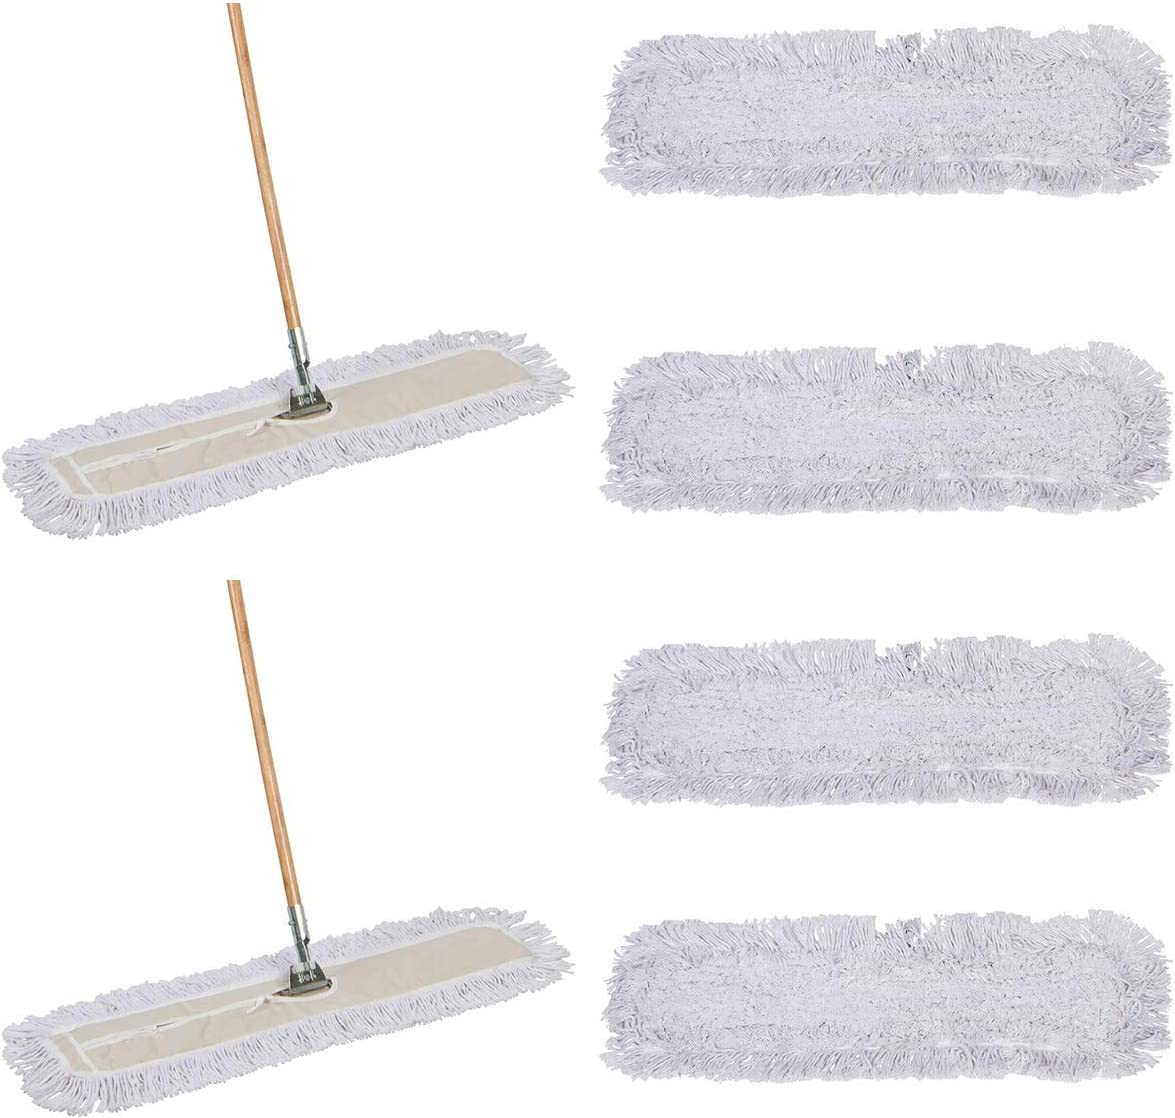 30 X 5 Wide Mop Head with Cut Ends Tidy Tools 30 Inch Cotton Dust Mop 63 Inch Wood Handle